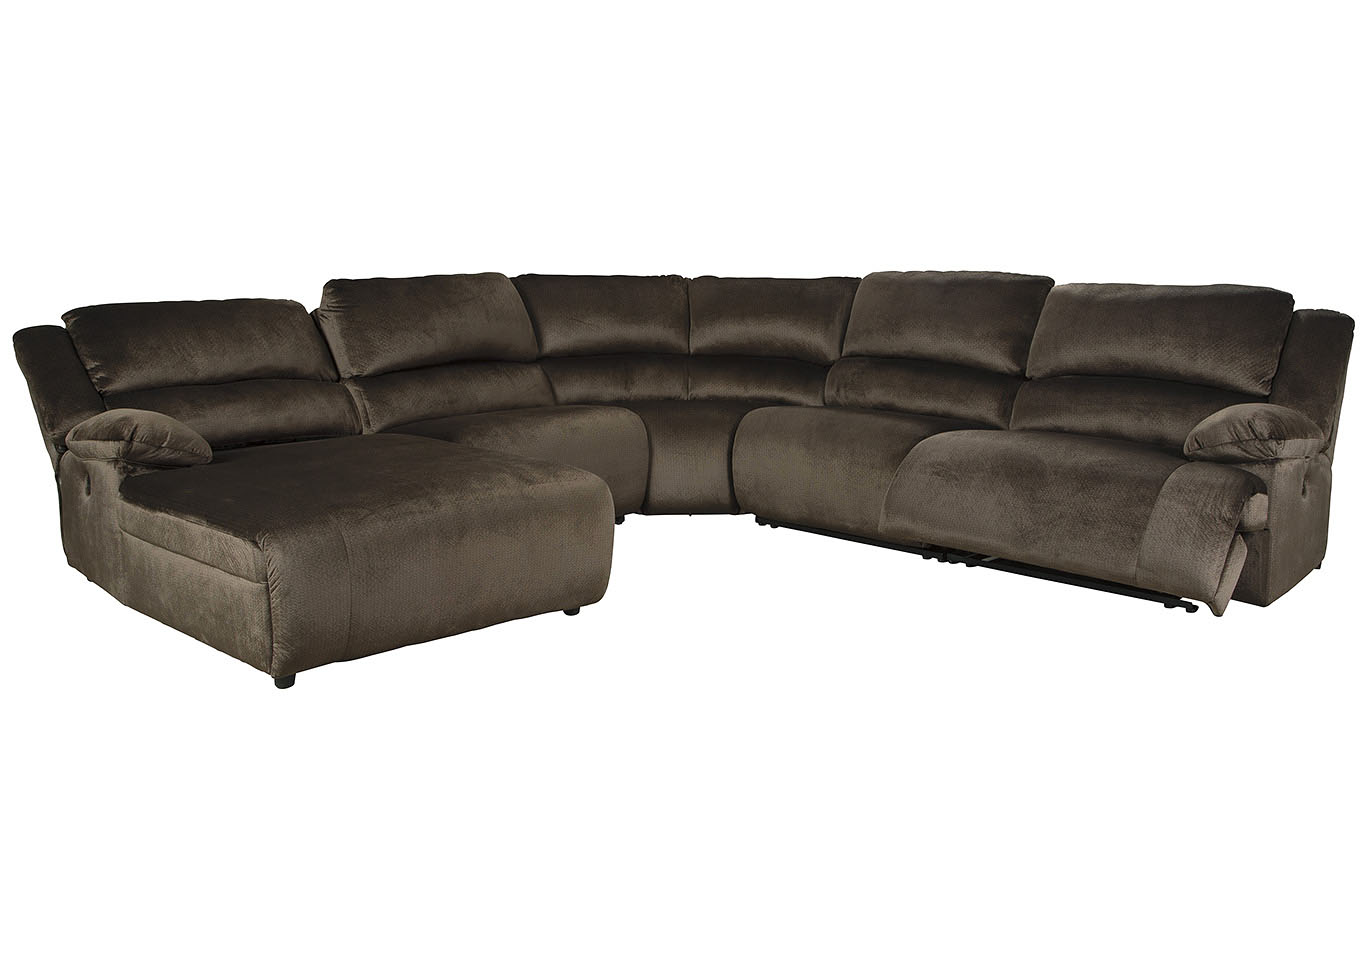 Clonmel 5 Piece Power Reclining Sectional with Chaise,Signature Design By Ashley